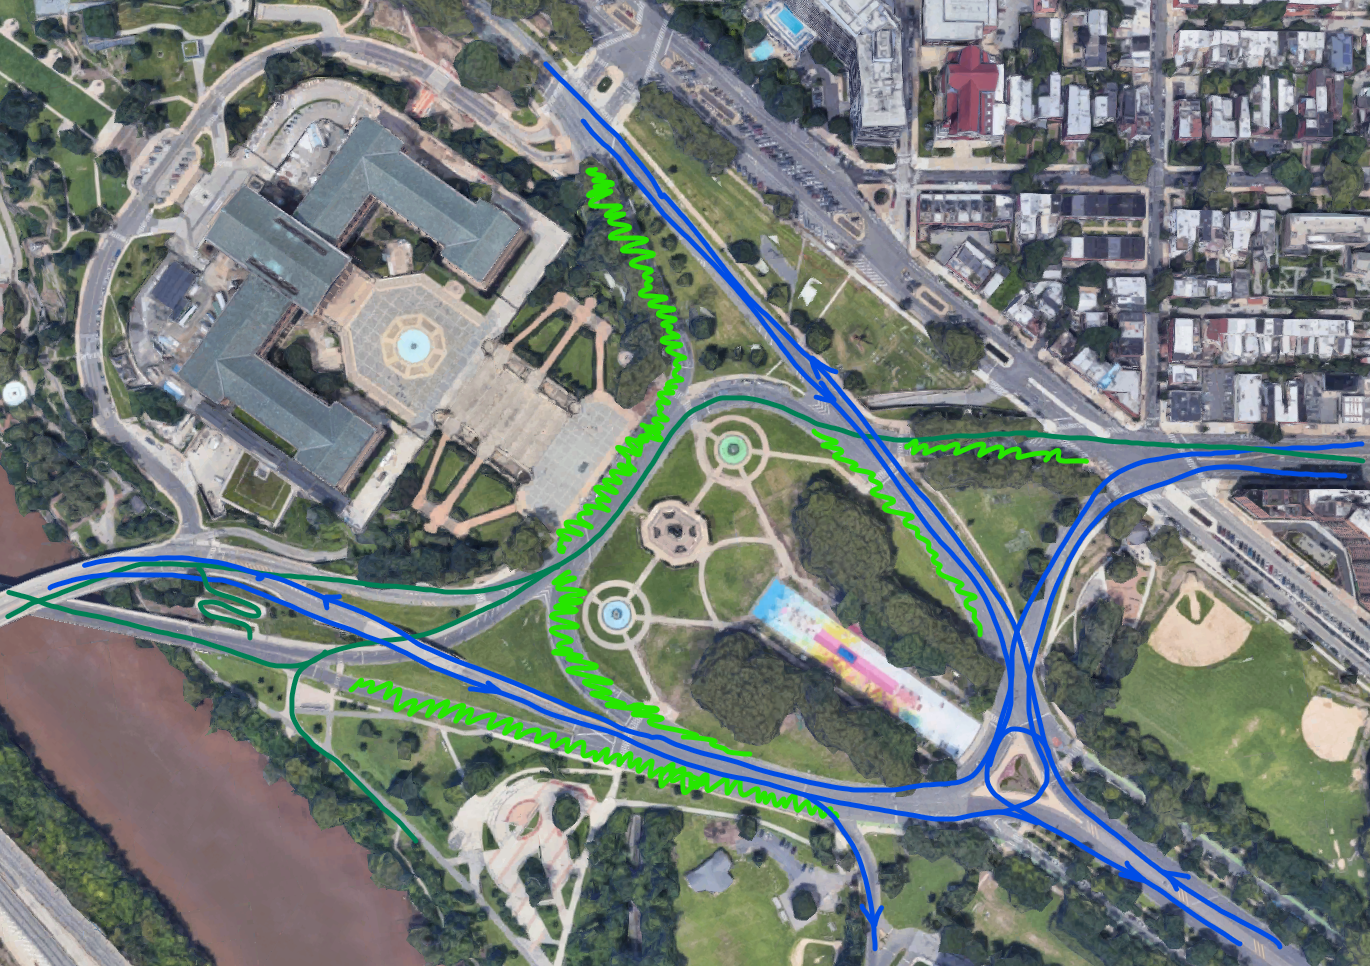 Rough sketch of future land use around the Oval. Blue is future traffic patterns, dark green is new bike connections, and light green is reclaimed green space